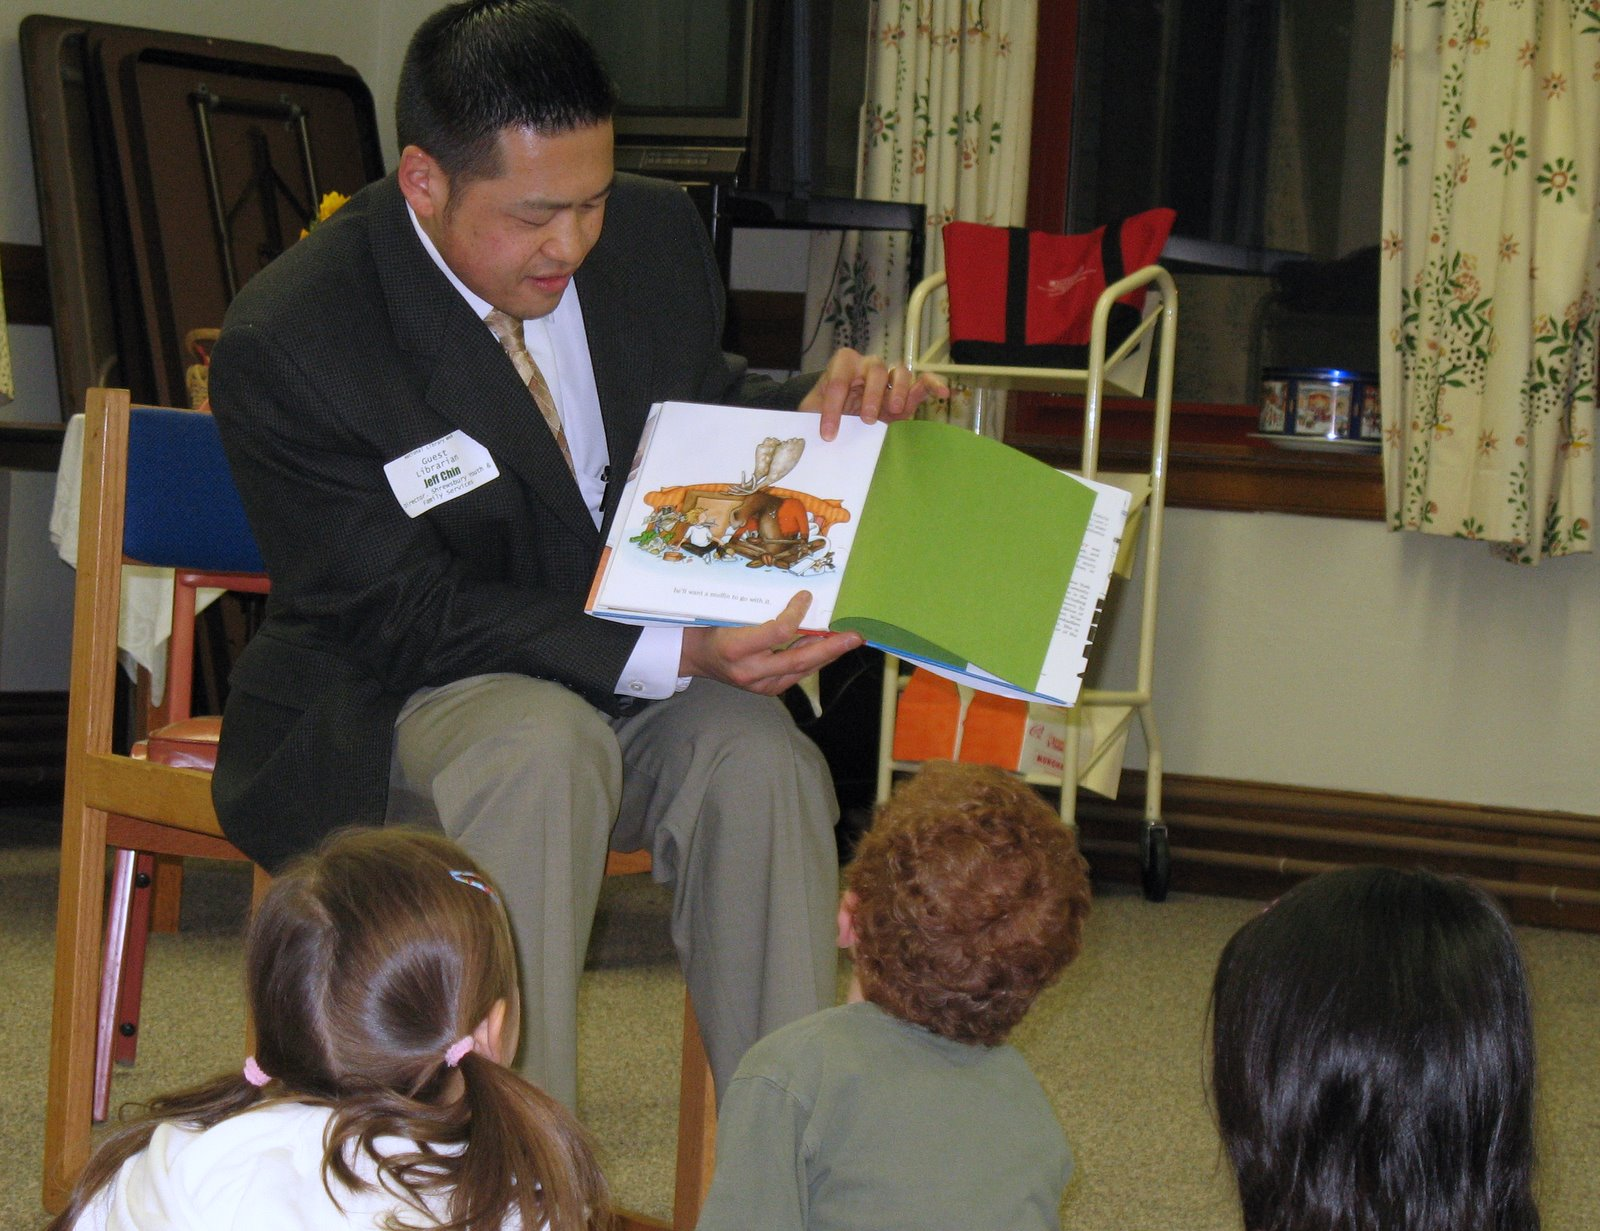 Man sitting on a chair and reading from a book to kids